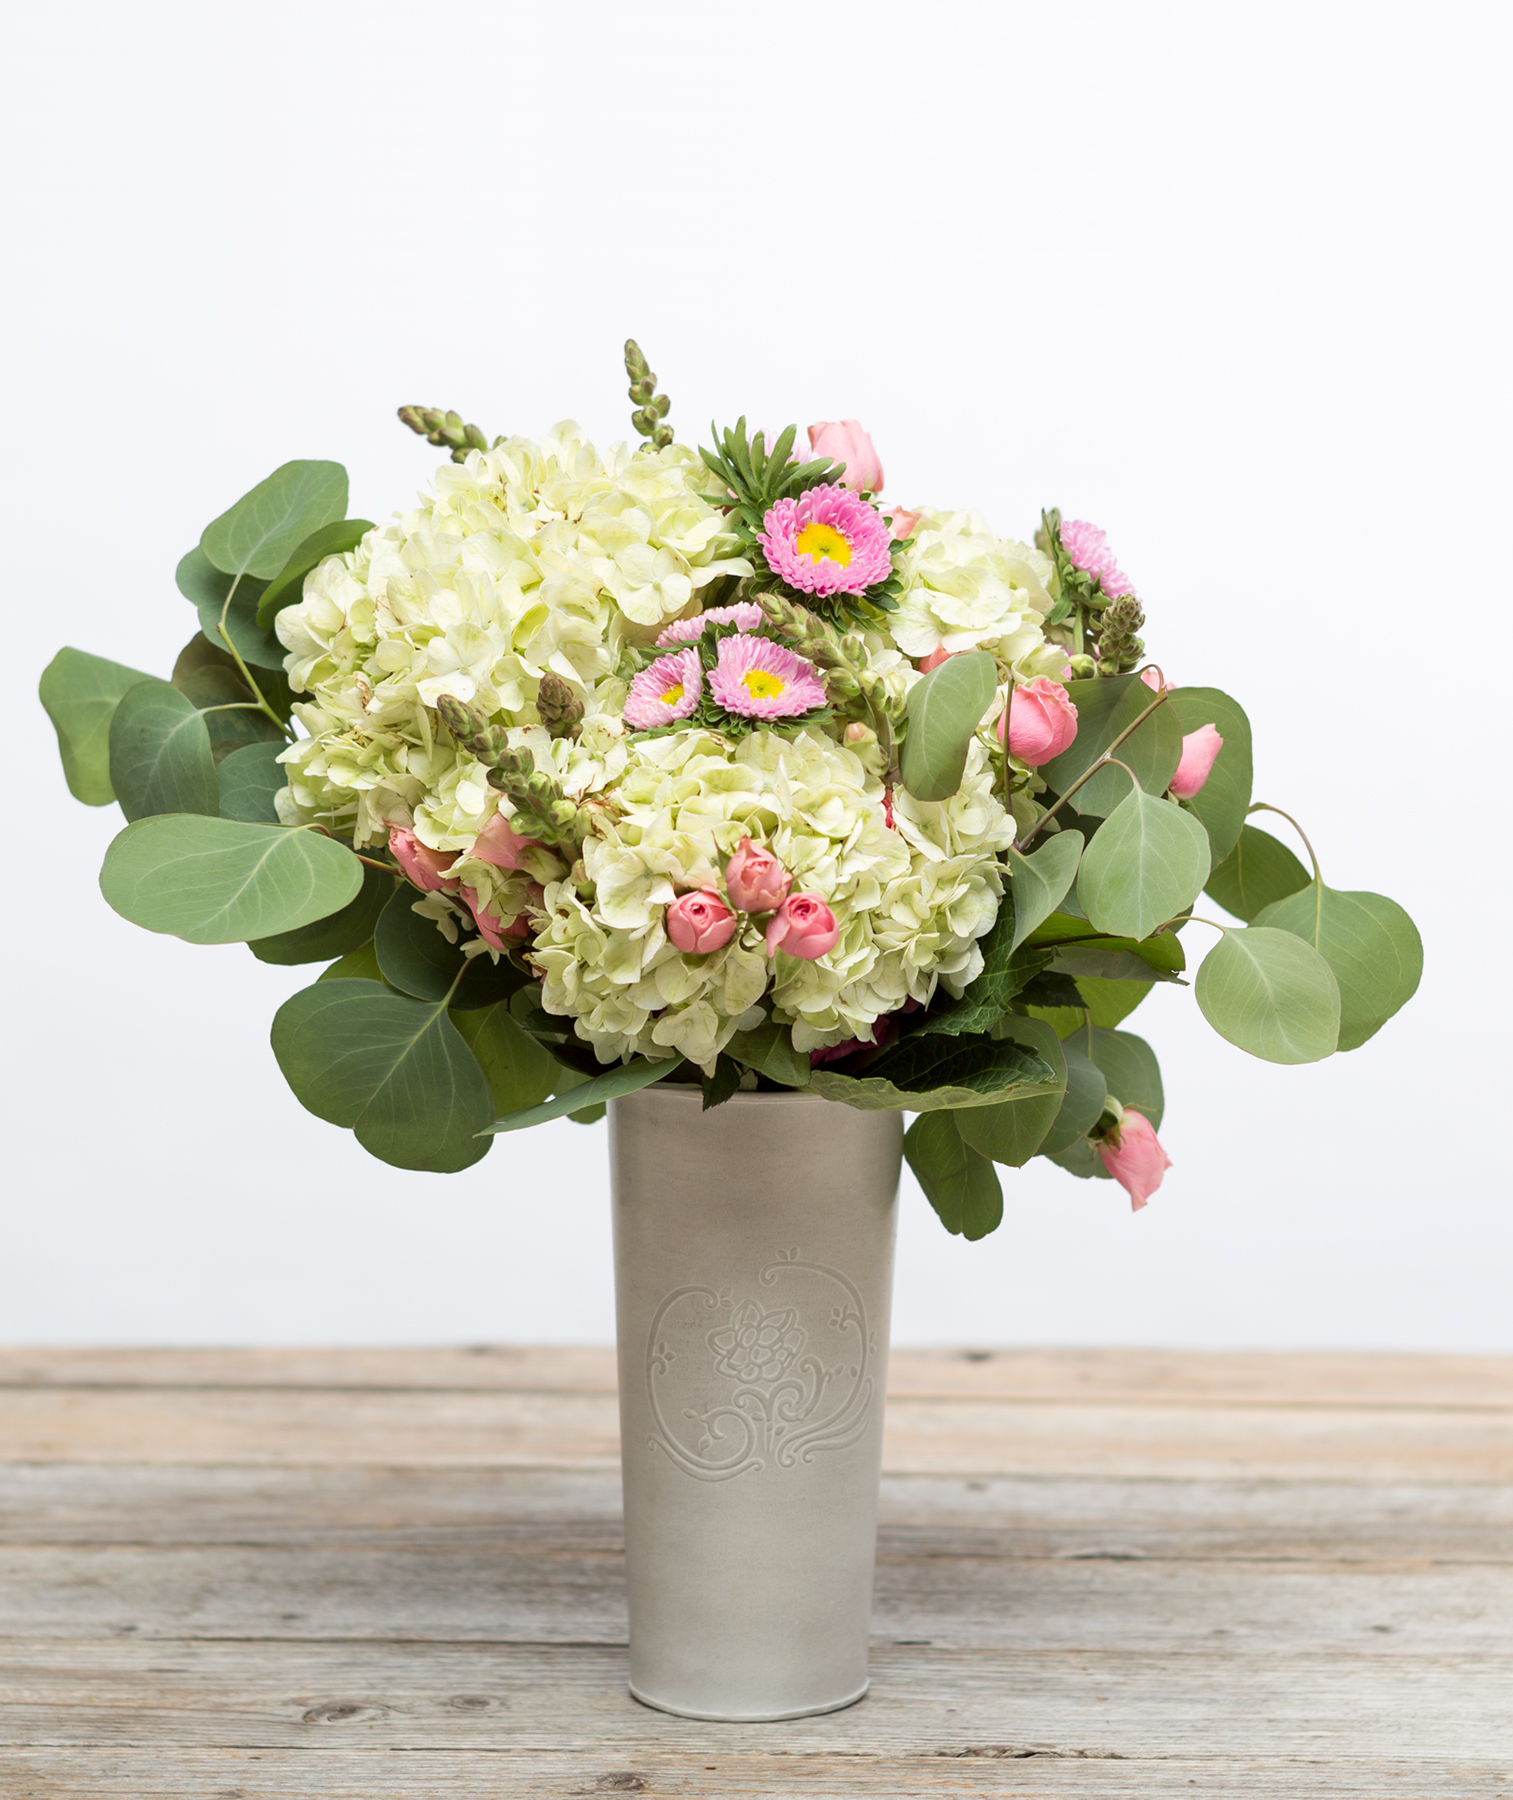 Bouquet with white hydrangeas